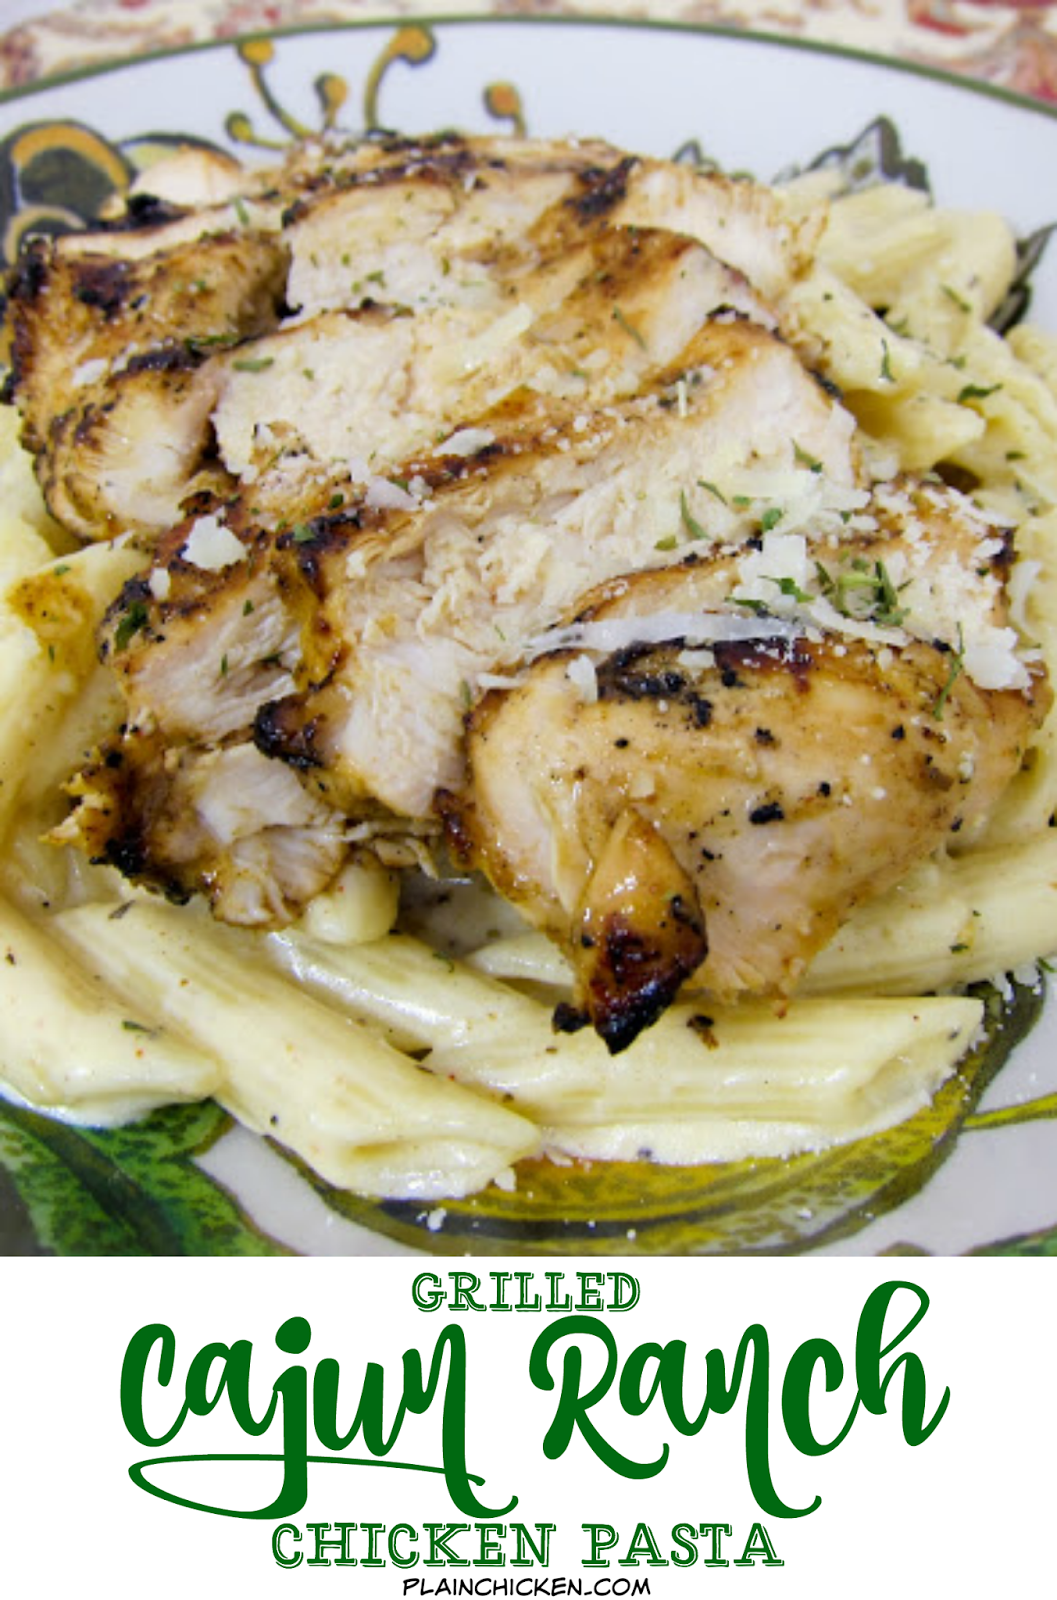 Grilled ranch chicken breast recipes